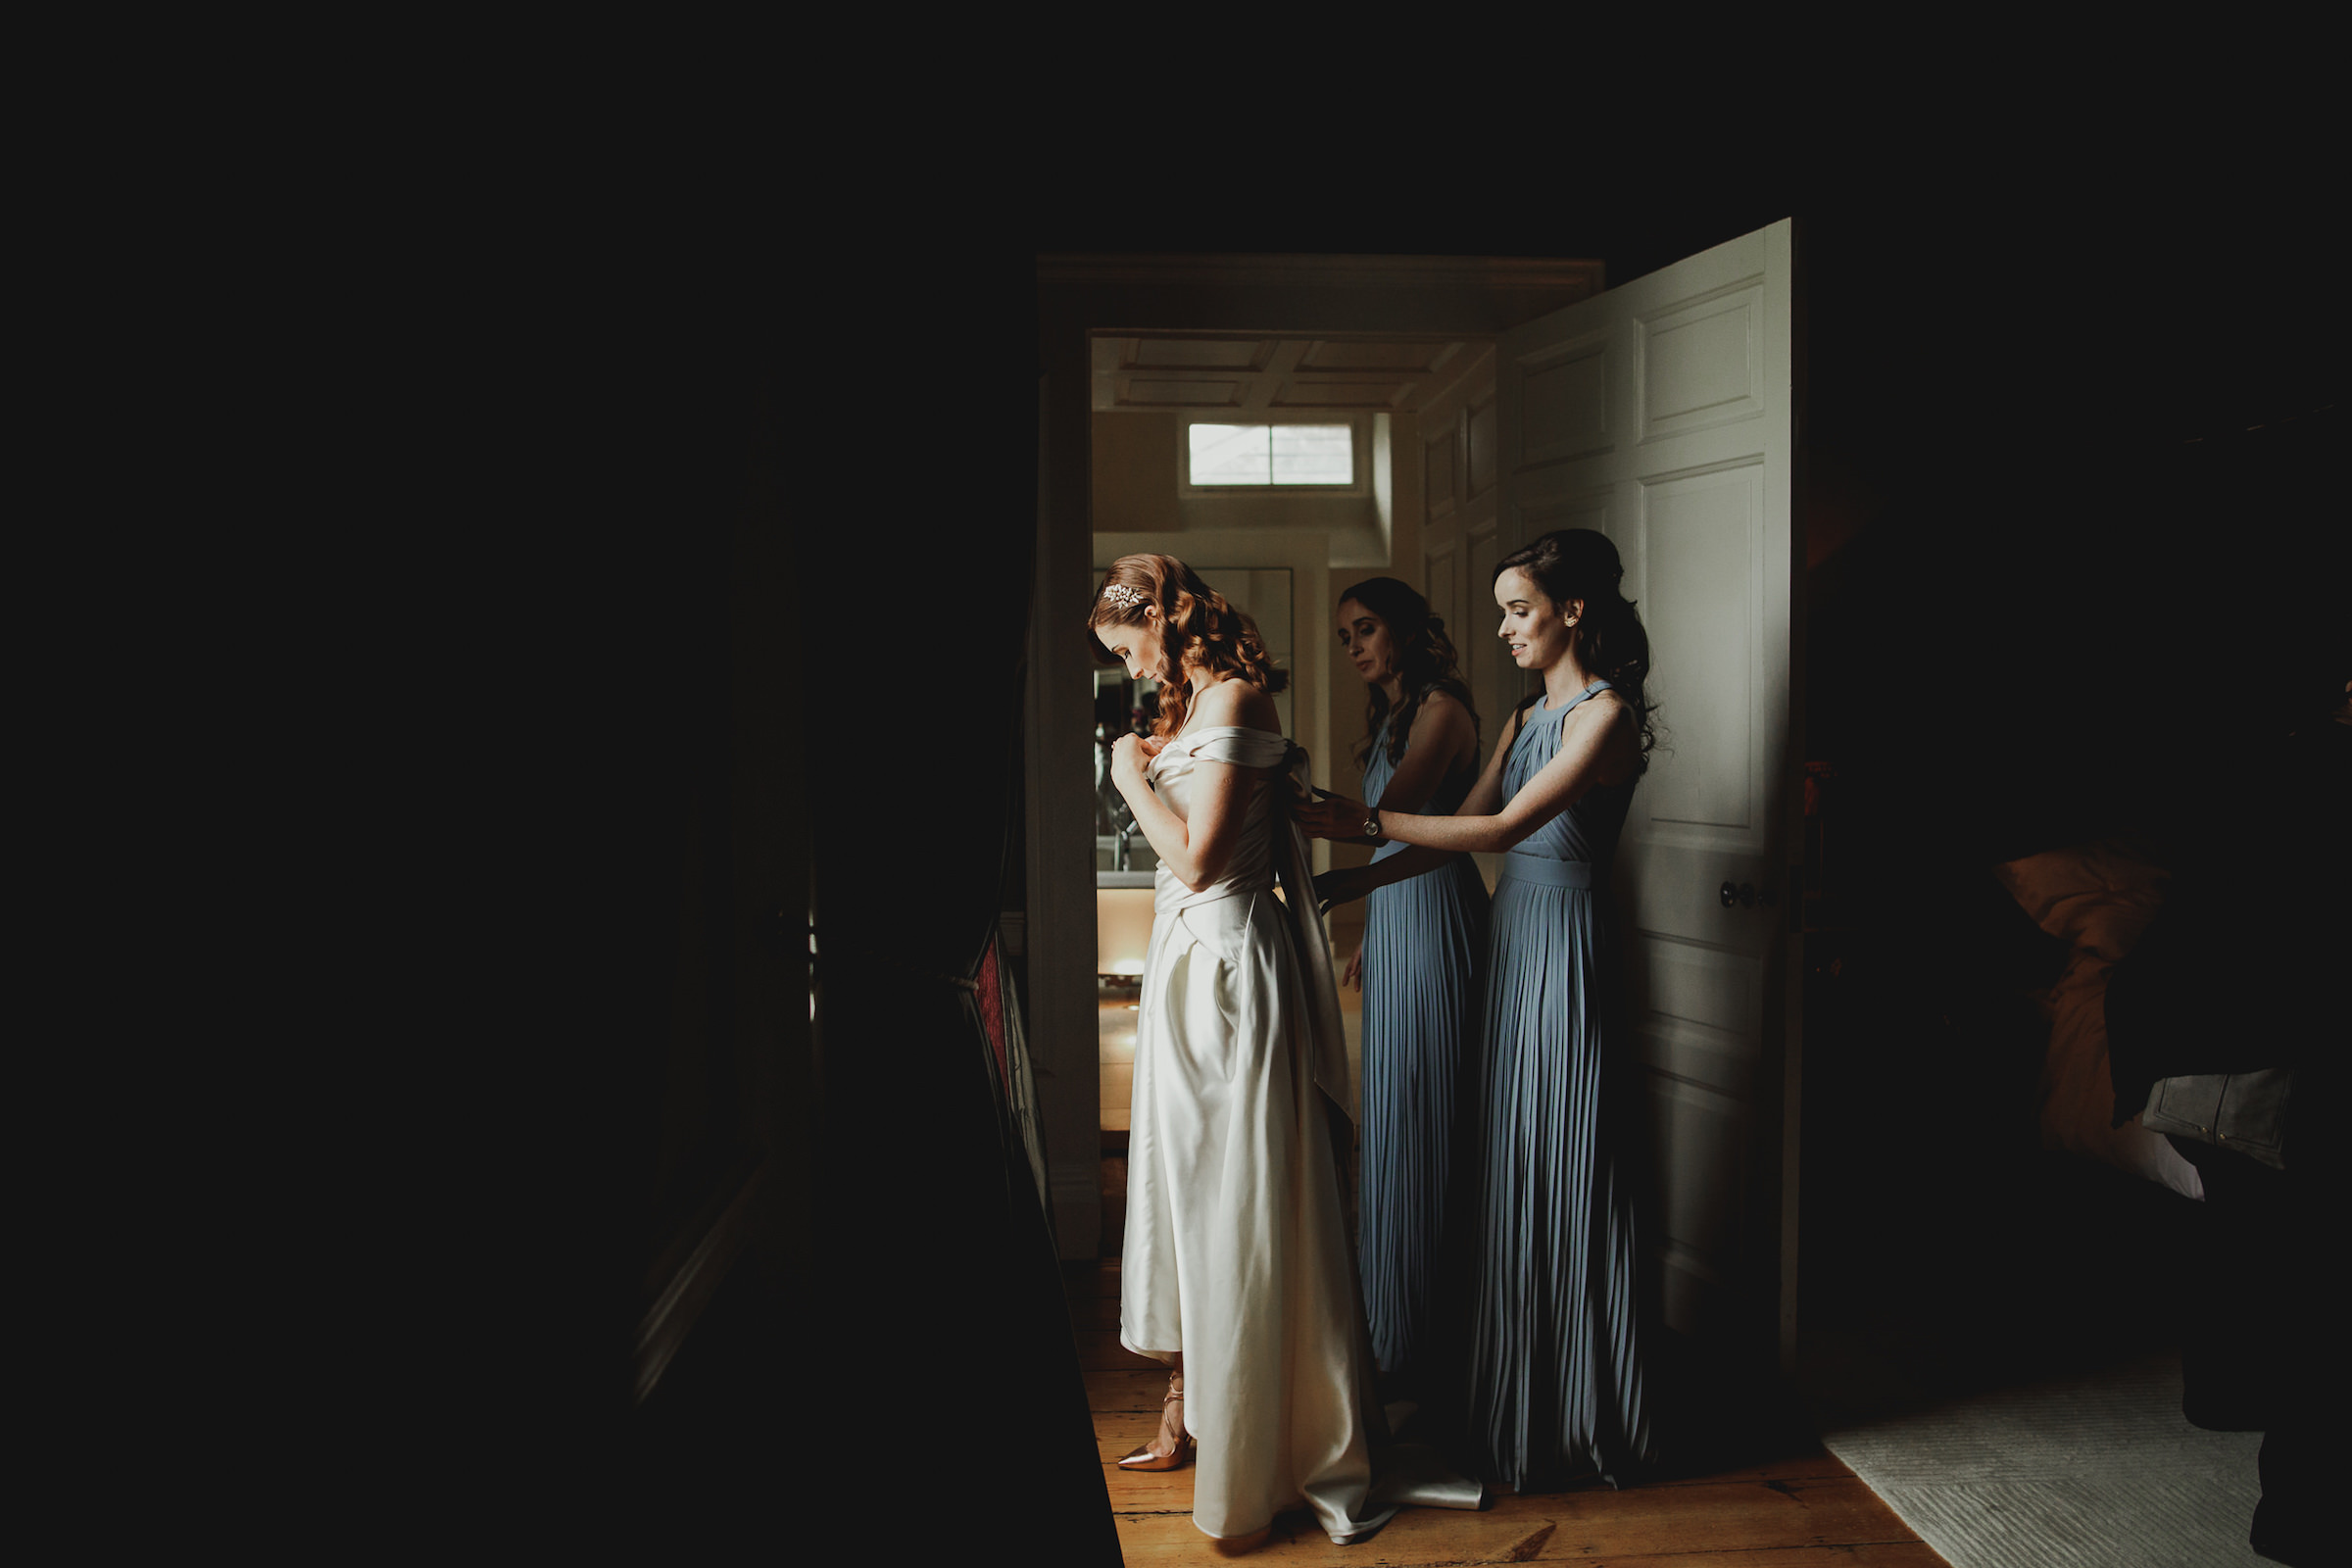 Red haired bride getting ready with bridesmaids - photo by White Cat Studio